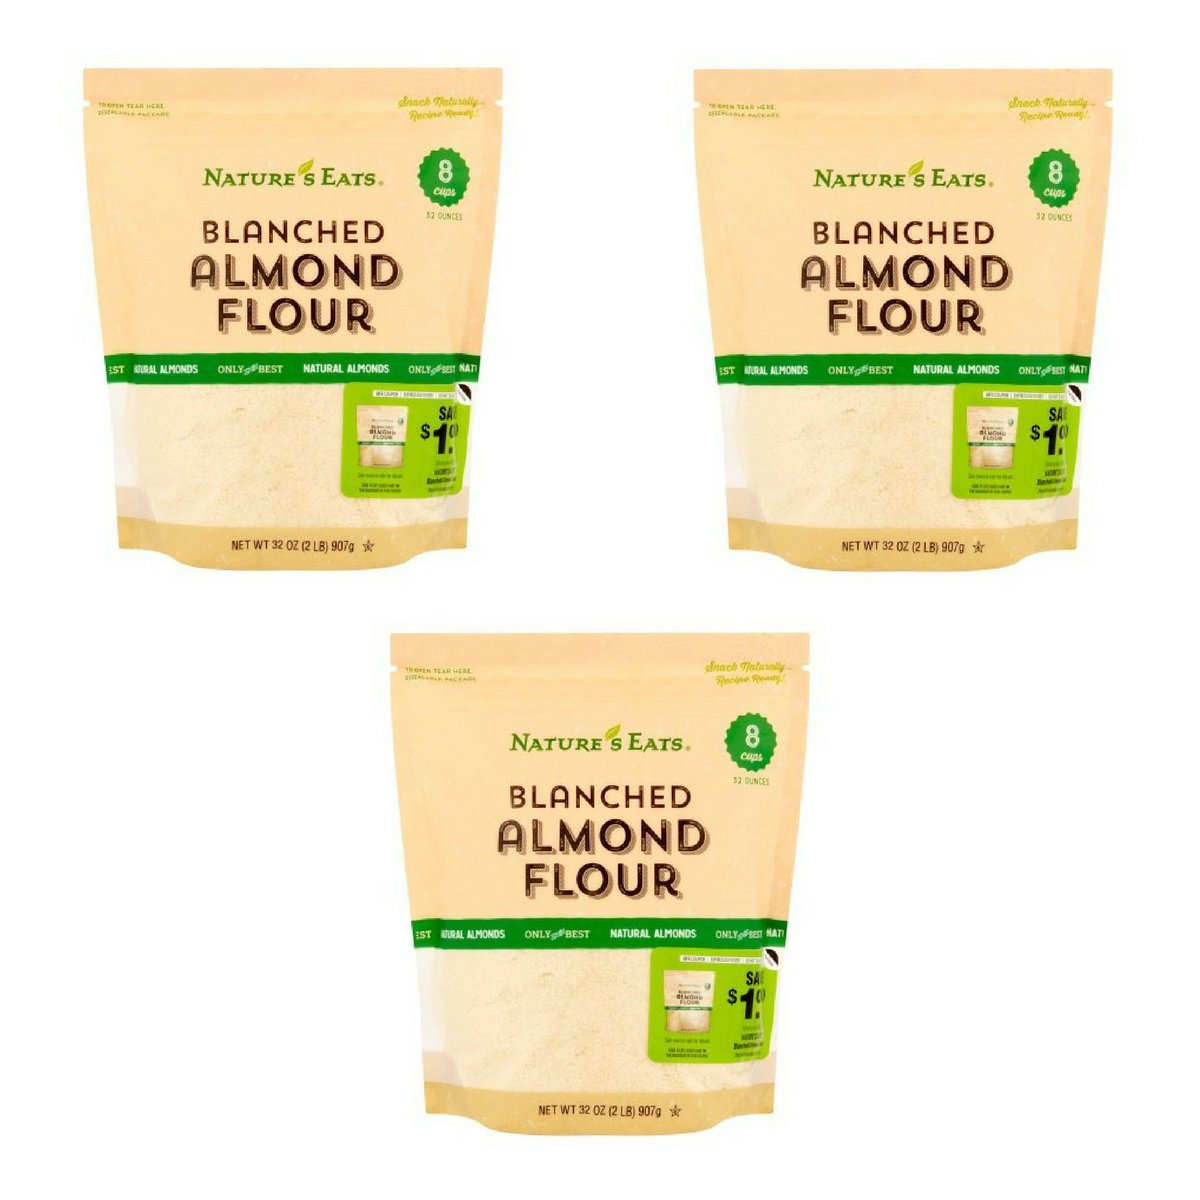 Nature's Eats Blanched Almond Flour, 32 Ounce (Pack of 3)